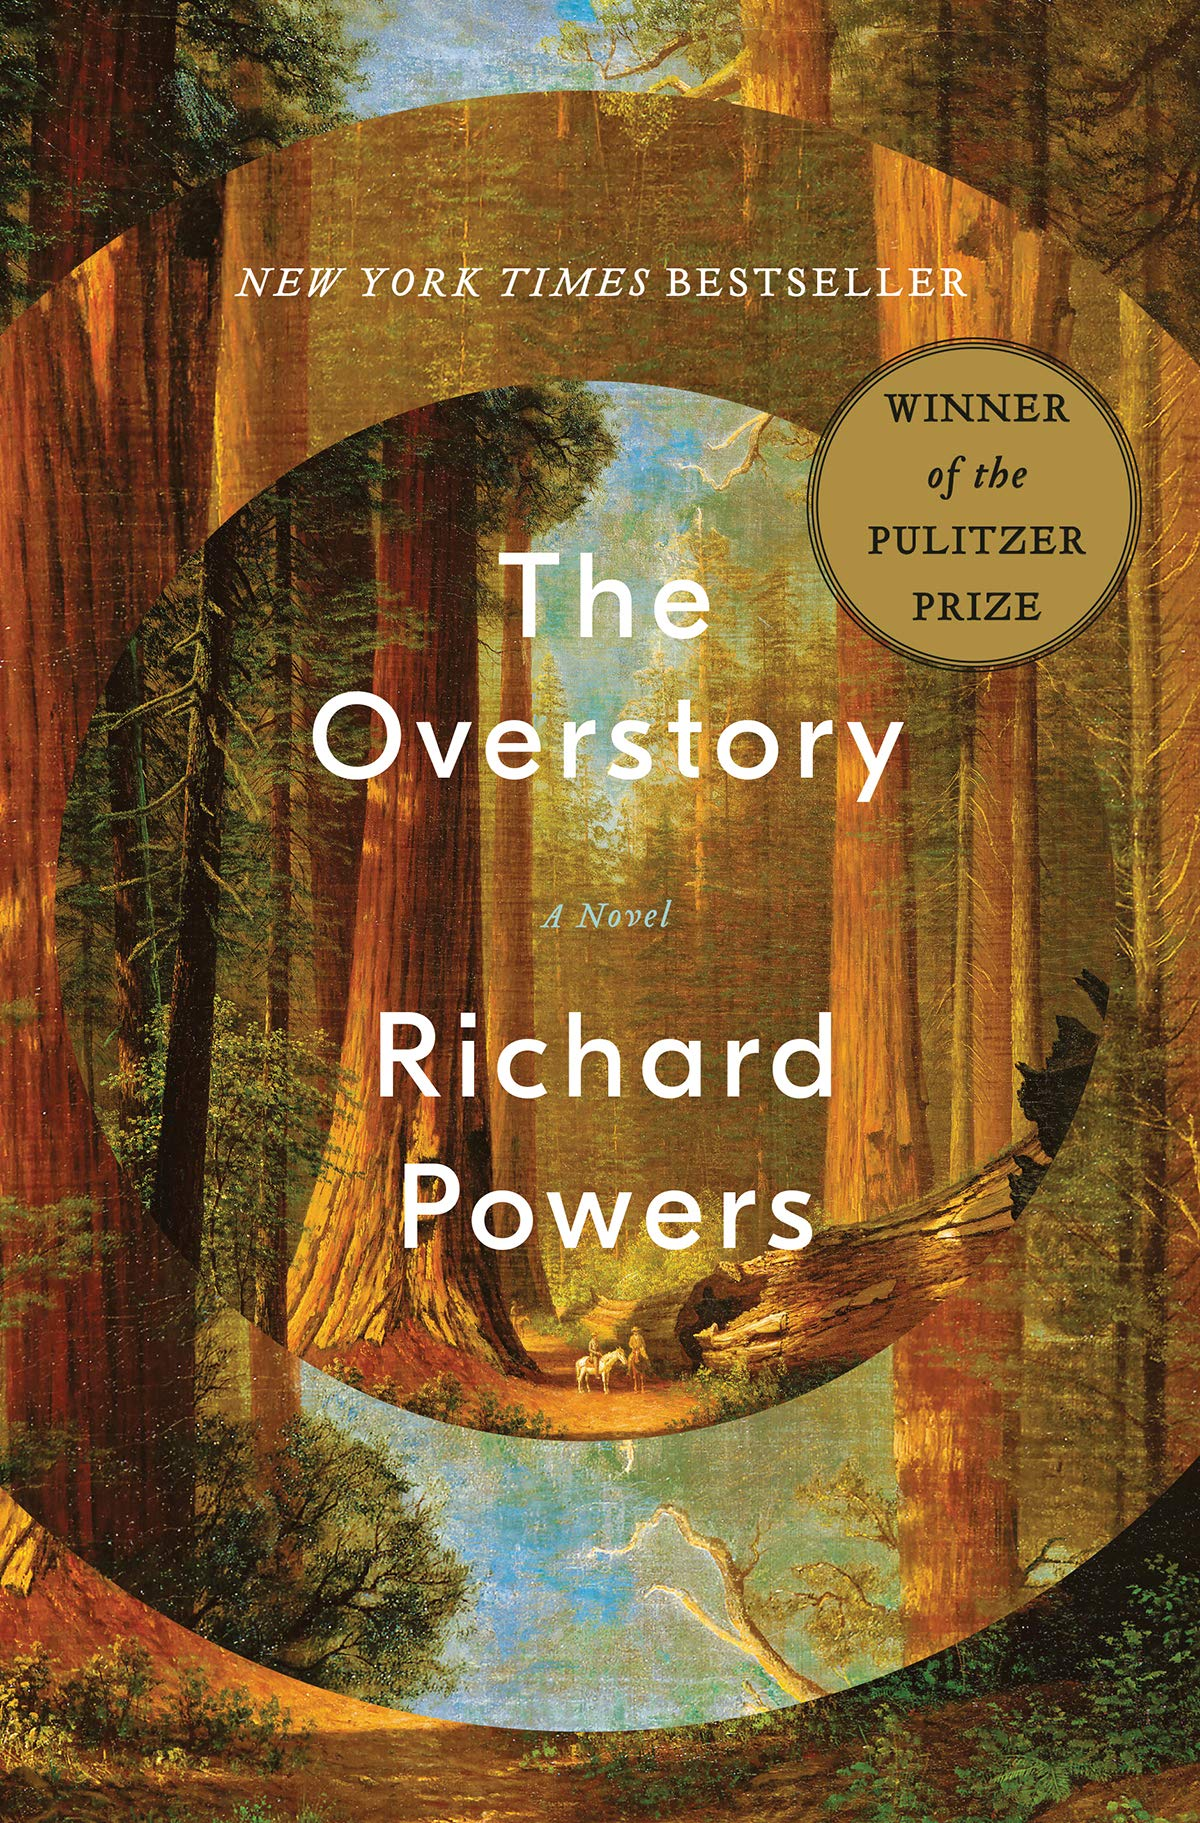 The Overstory by Richard Powers Reviewed by Susan Bazargan